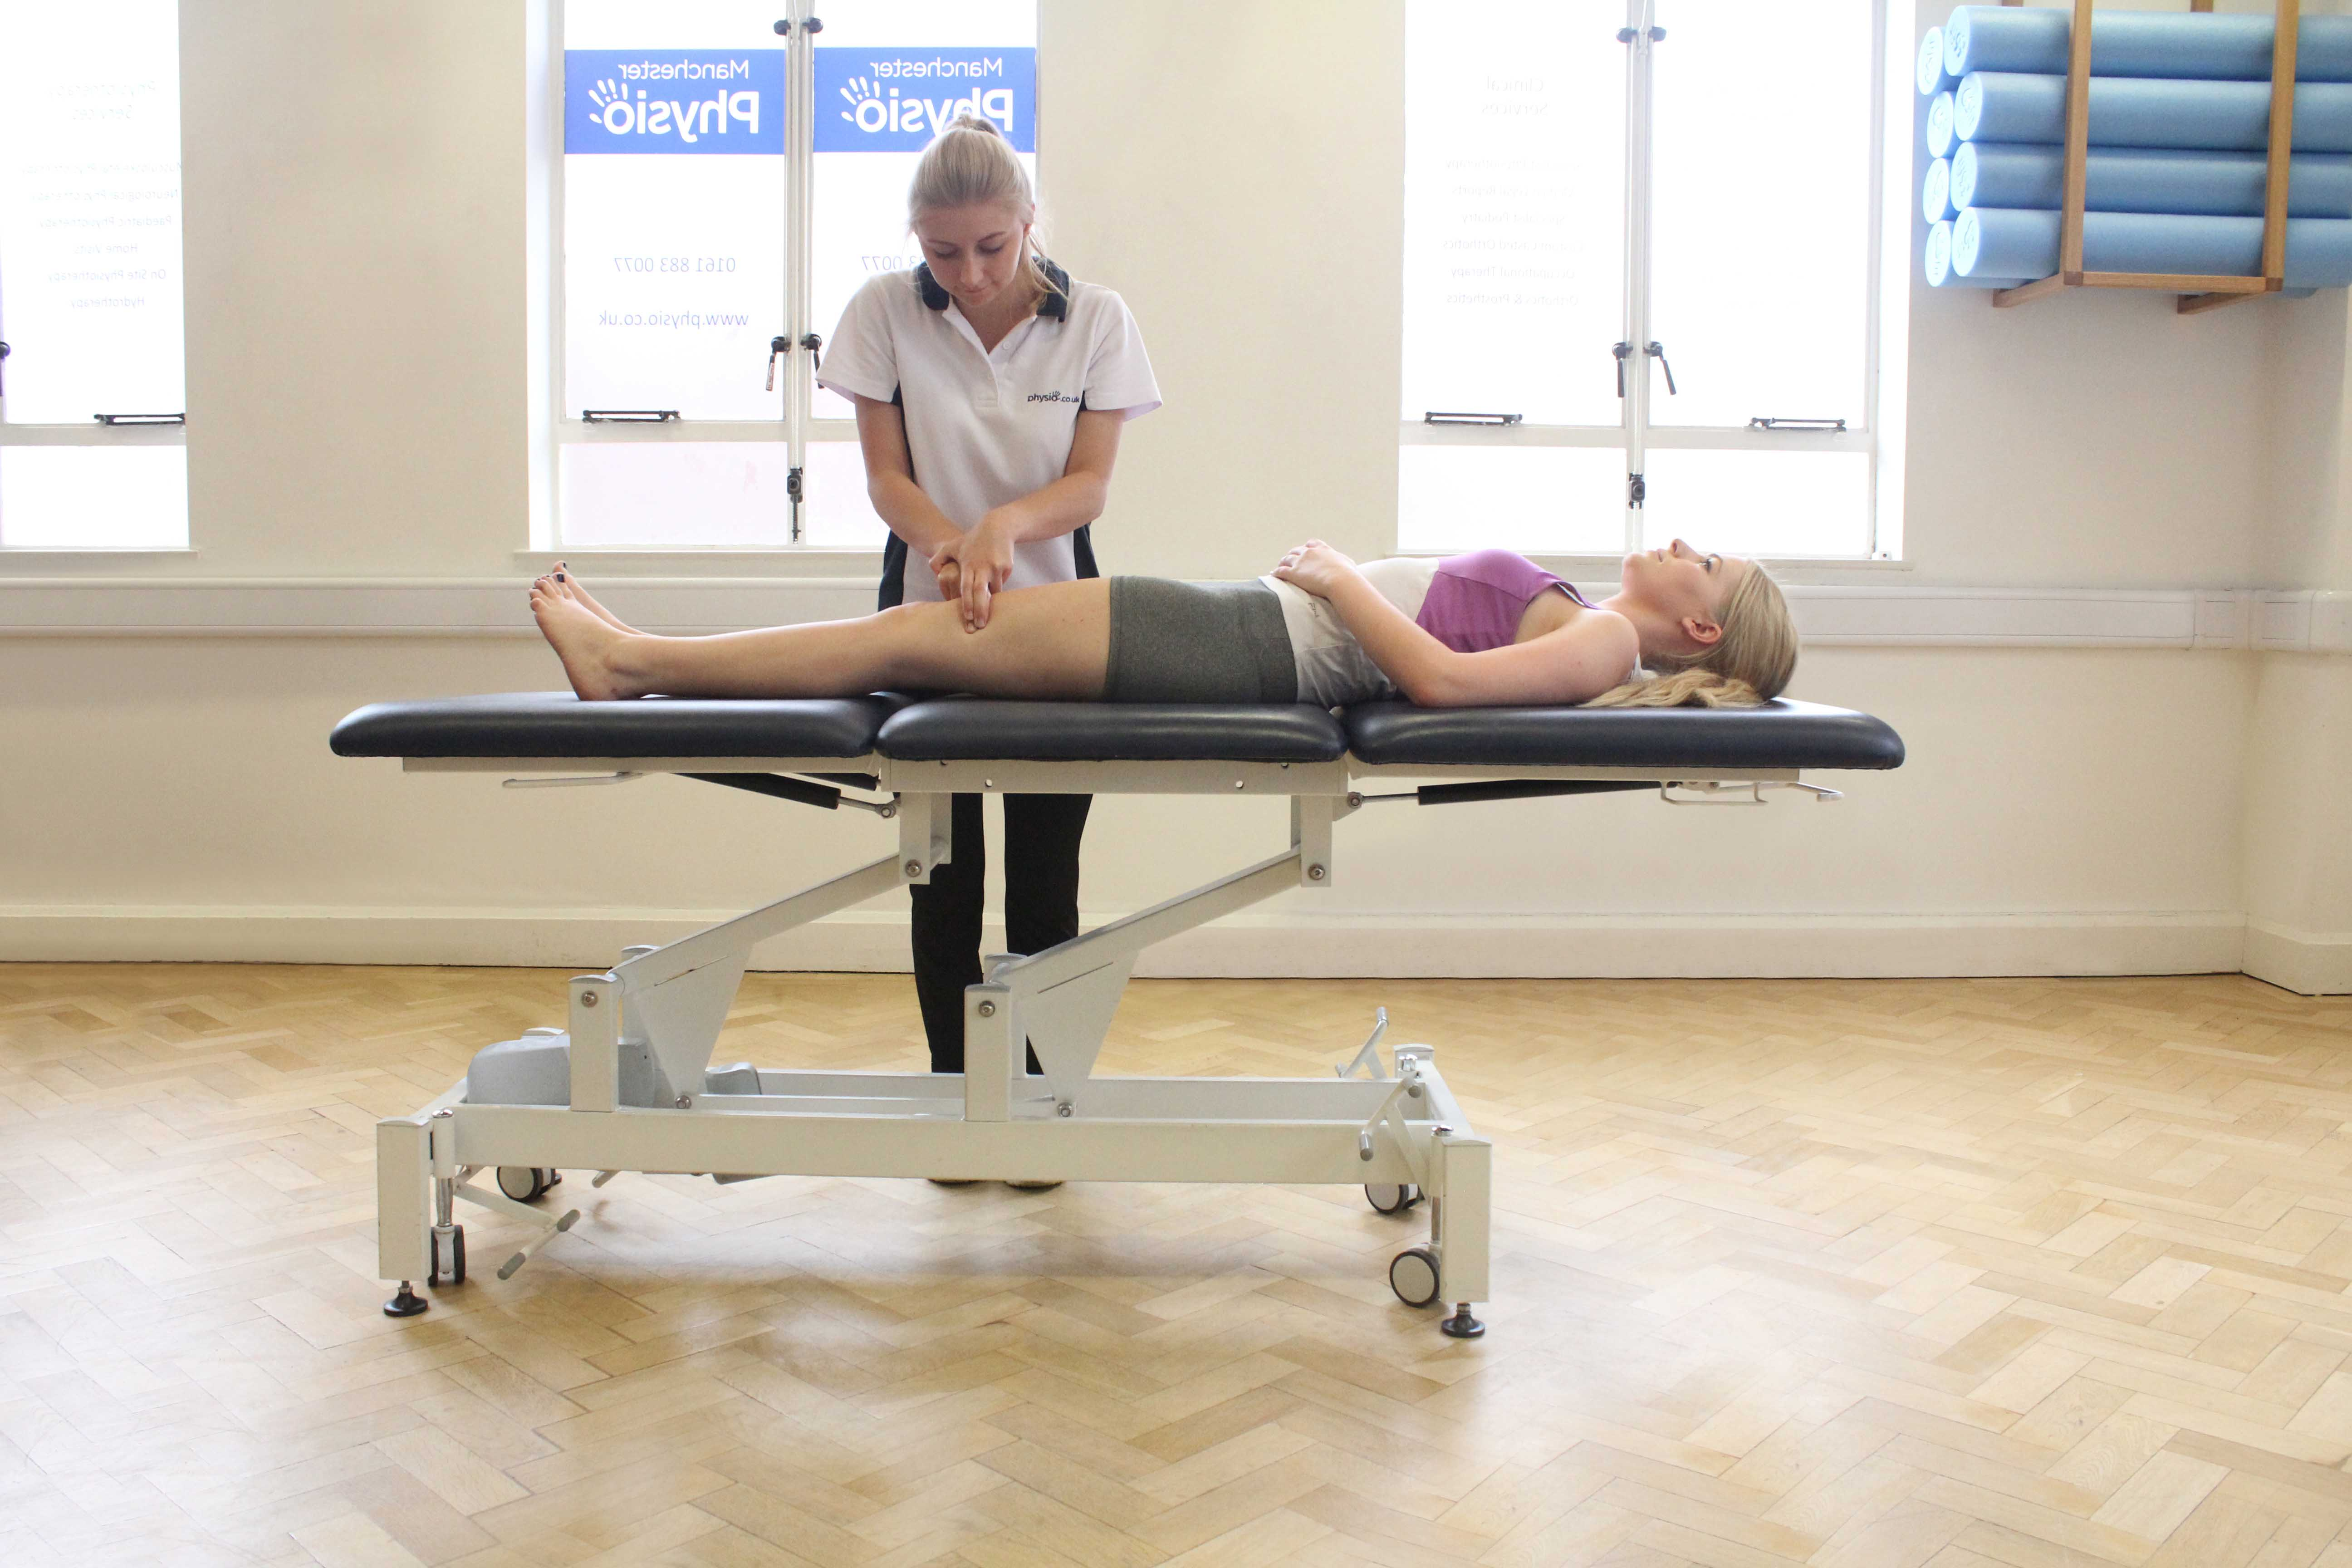 Transverse friction massage given by an experienced physiotherapist